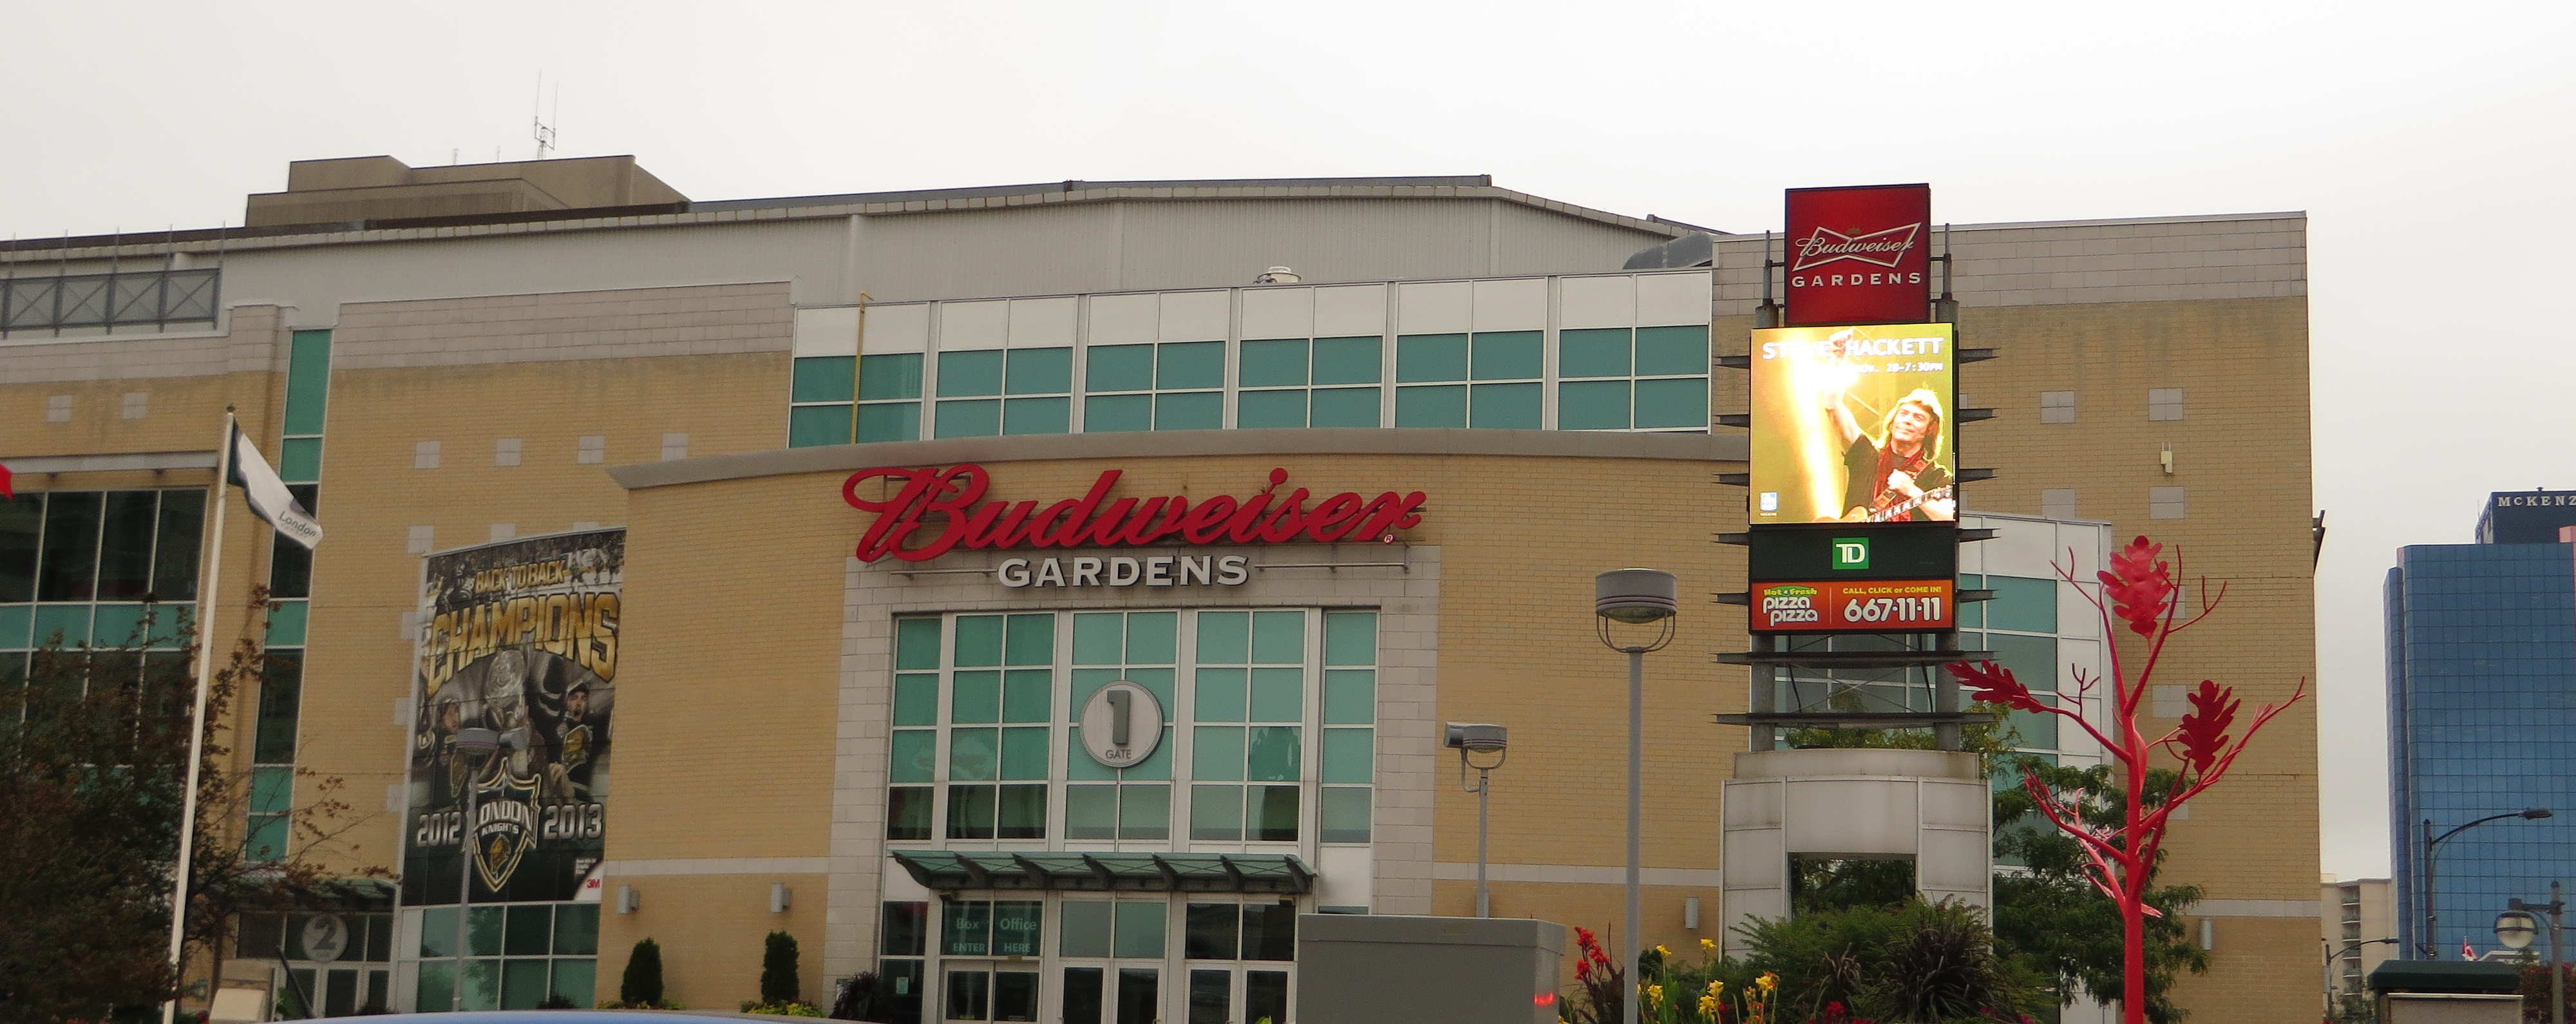 Budweiser Gardens During The Day